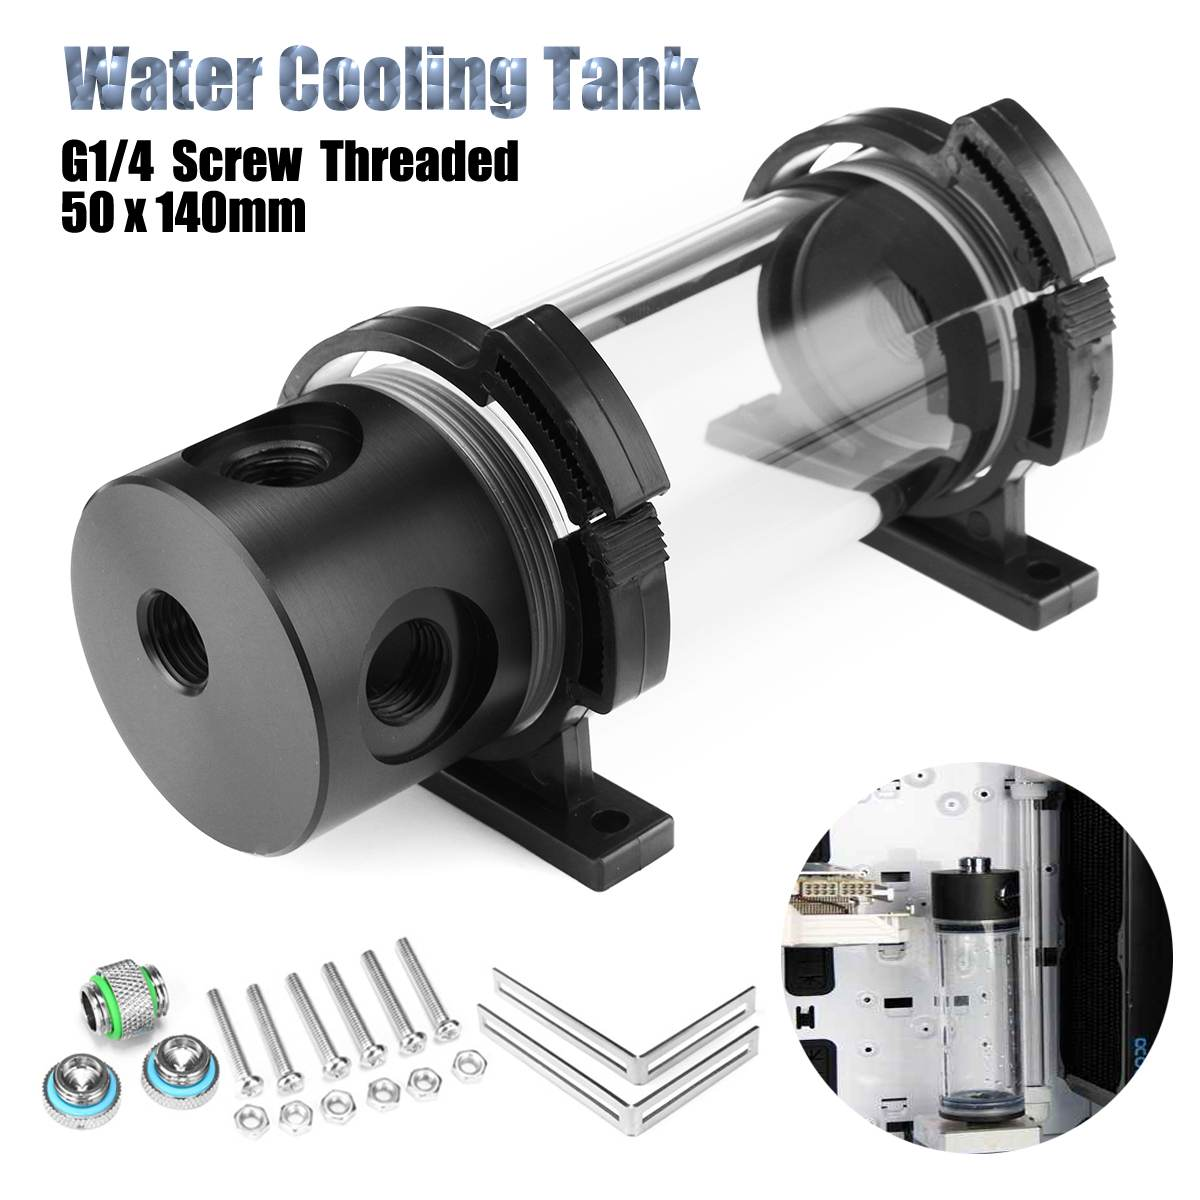 G1/4 Thread Water Cooling Tank 50mm X 140mm Acrylic Cylinder Reservoir Tank For PC Computer Liquid Cooling With L Shape Buckle